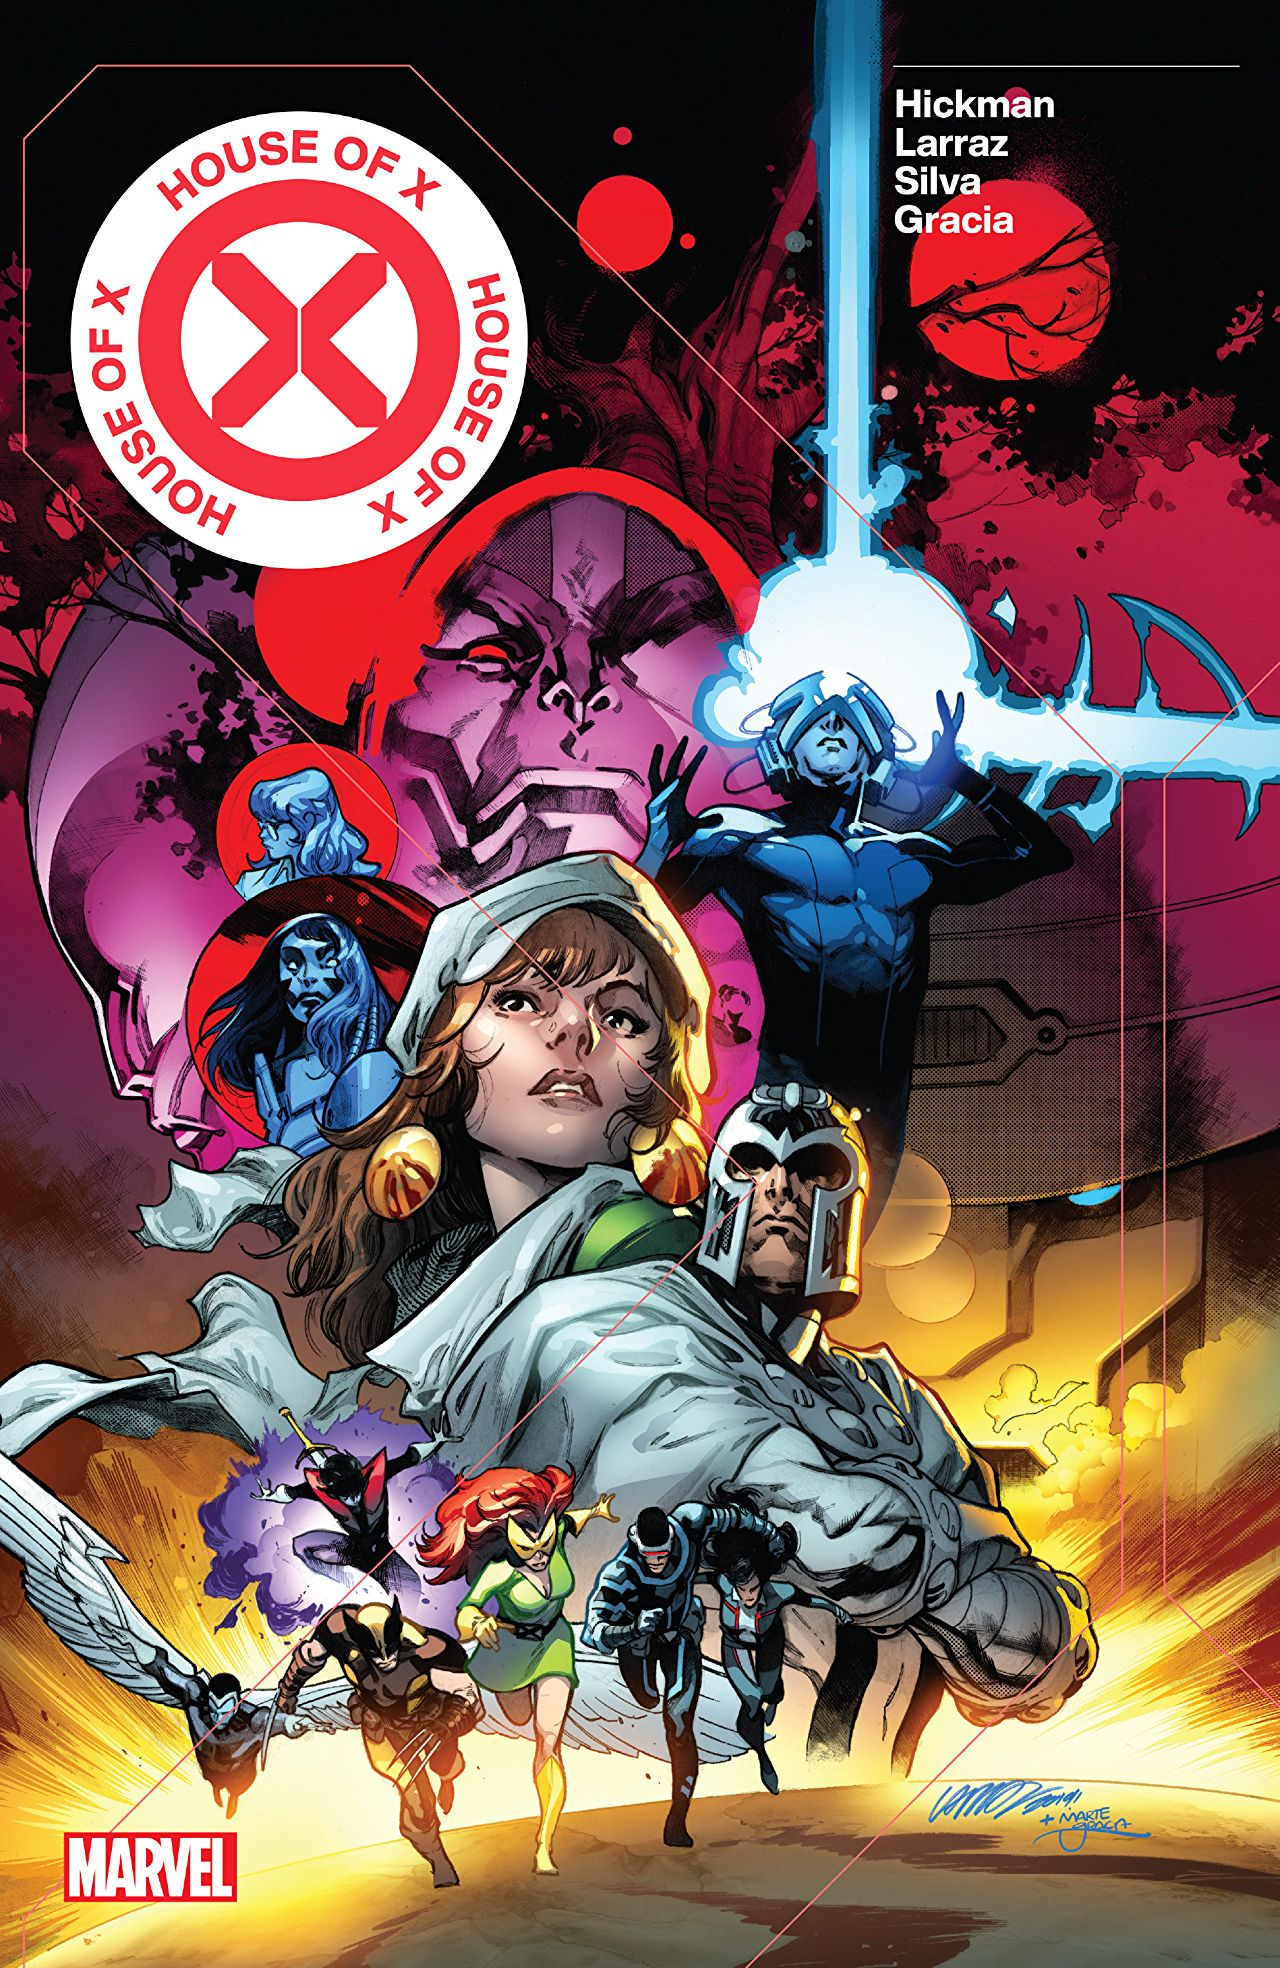 House of X/Powers of X HC review: A look inside the revolutionary project